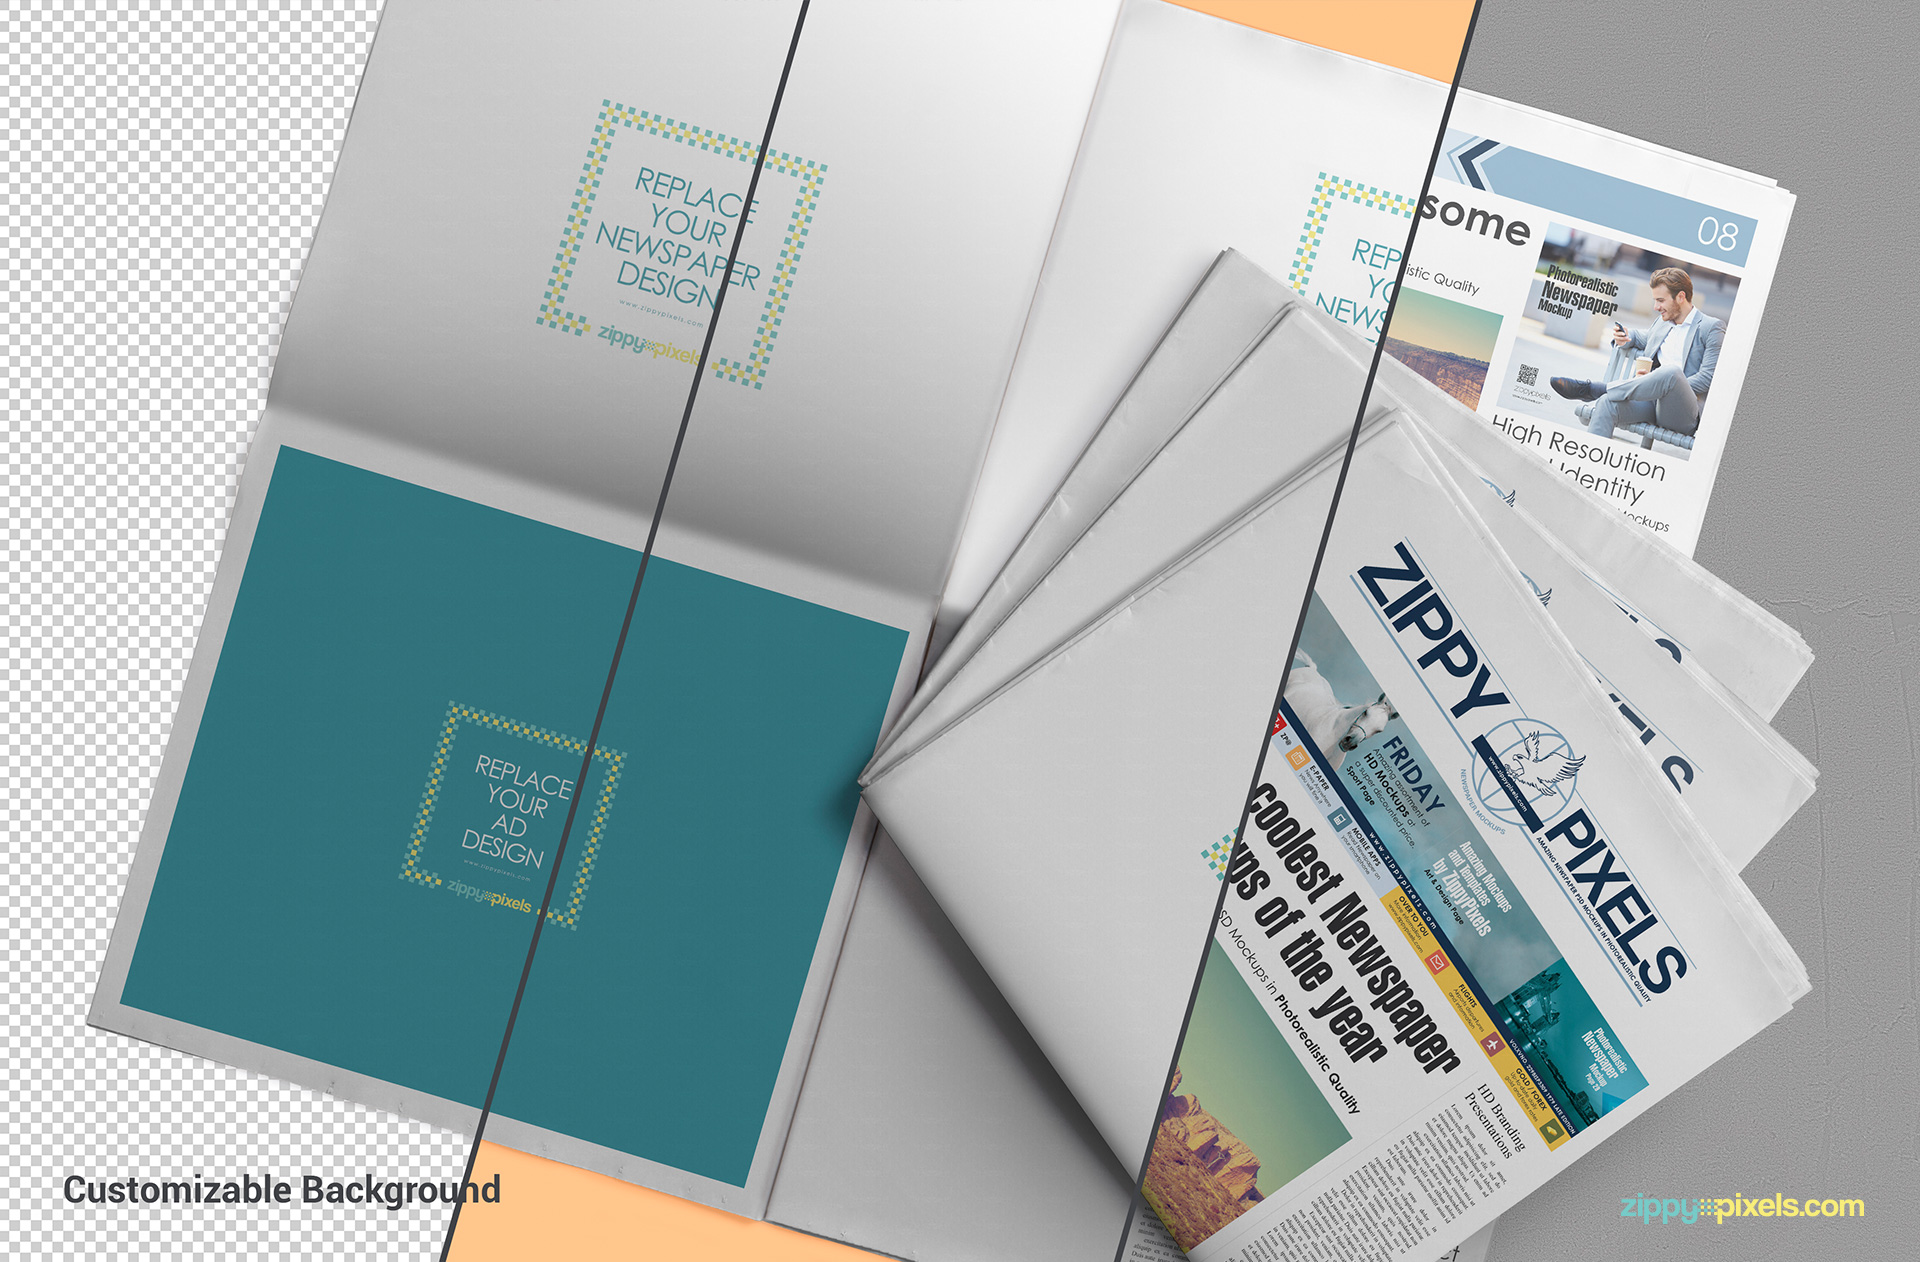 Free-Customizable-Newspaper-Ad-PSD-Mockup-05-824x542